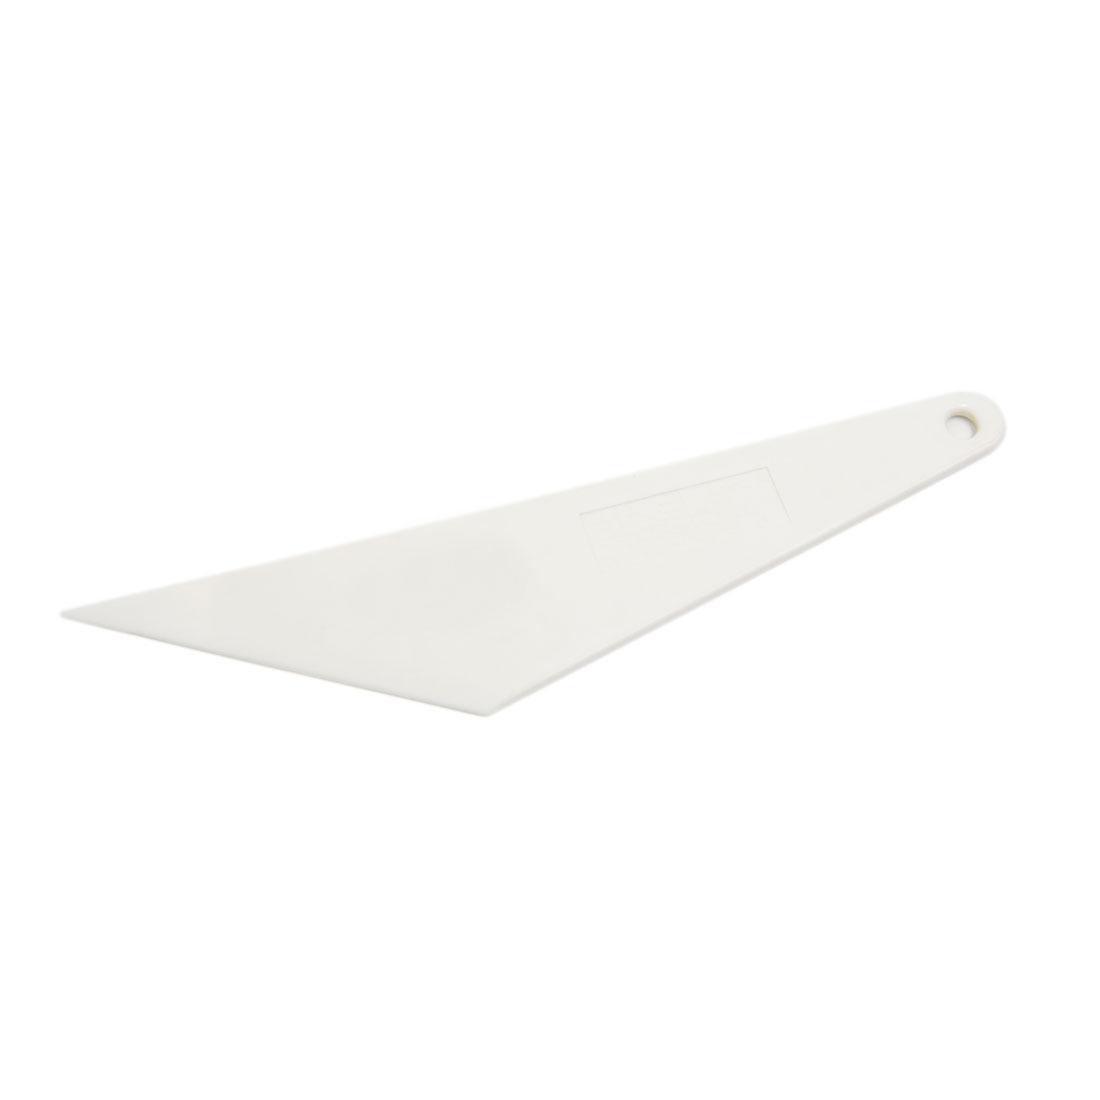 White Plastic Car Window Windscreen Sun Visor Film Tint Scraper Squeegee Cleaner